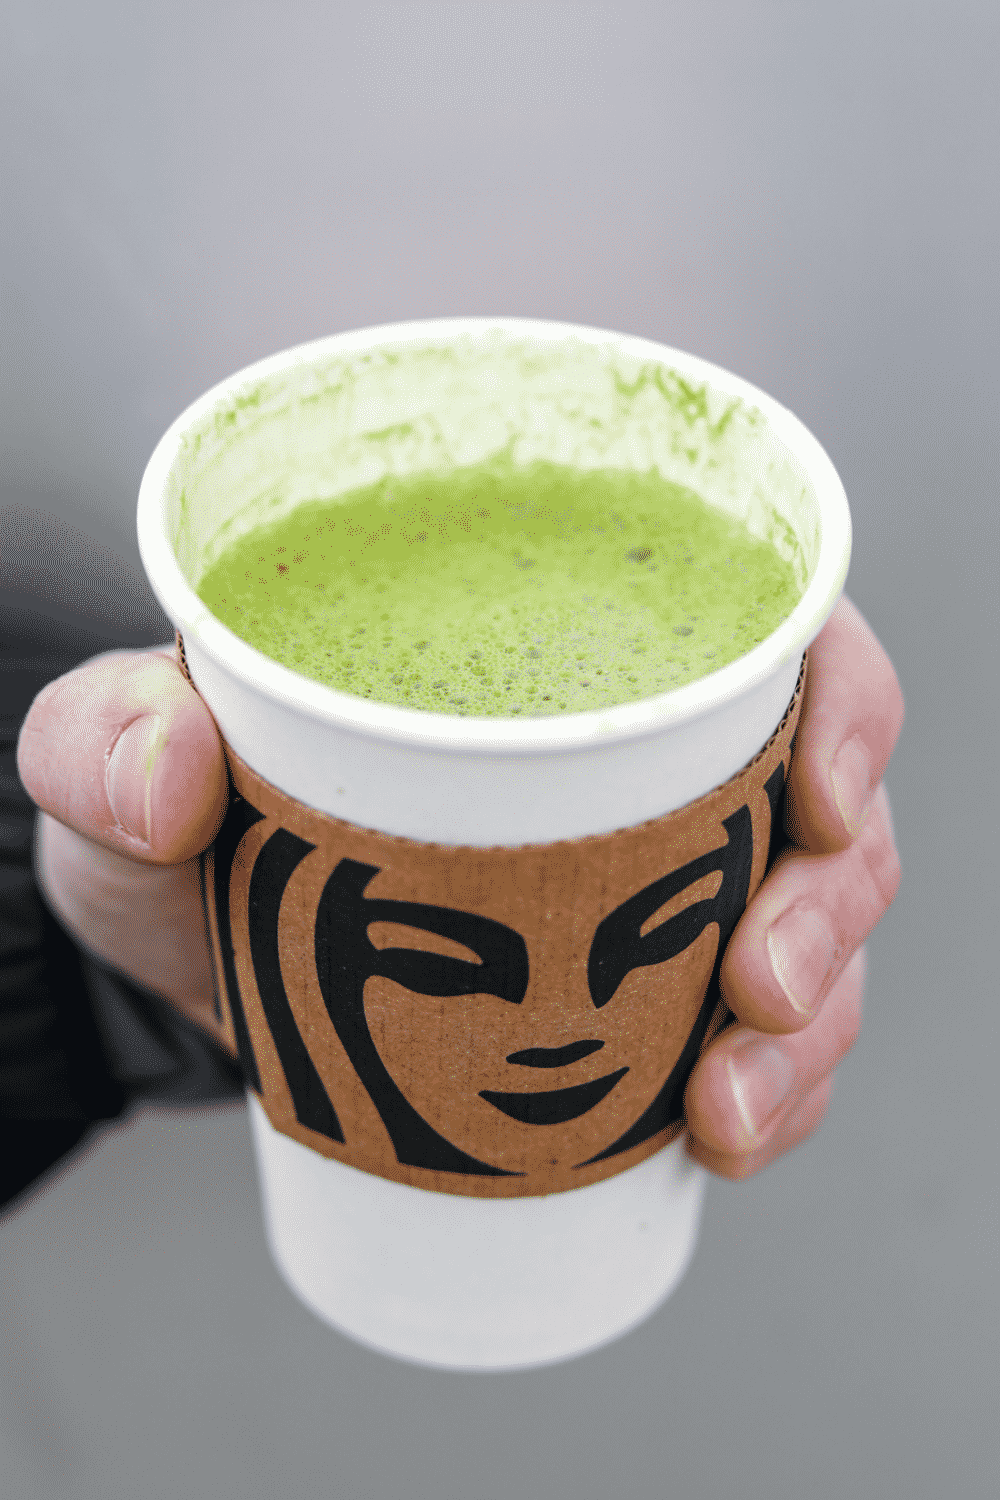 Hand holding a cup of Starbucks matcha latte.